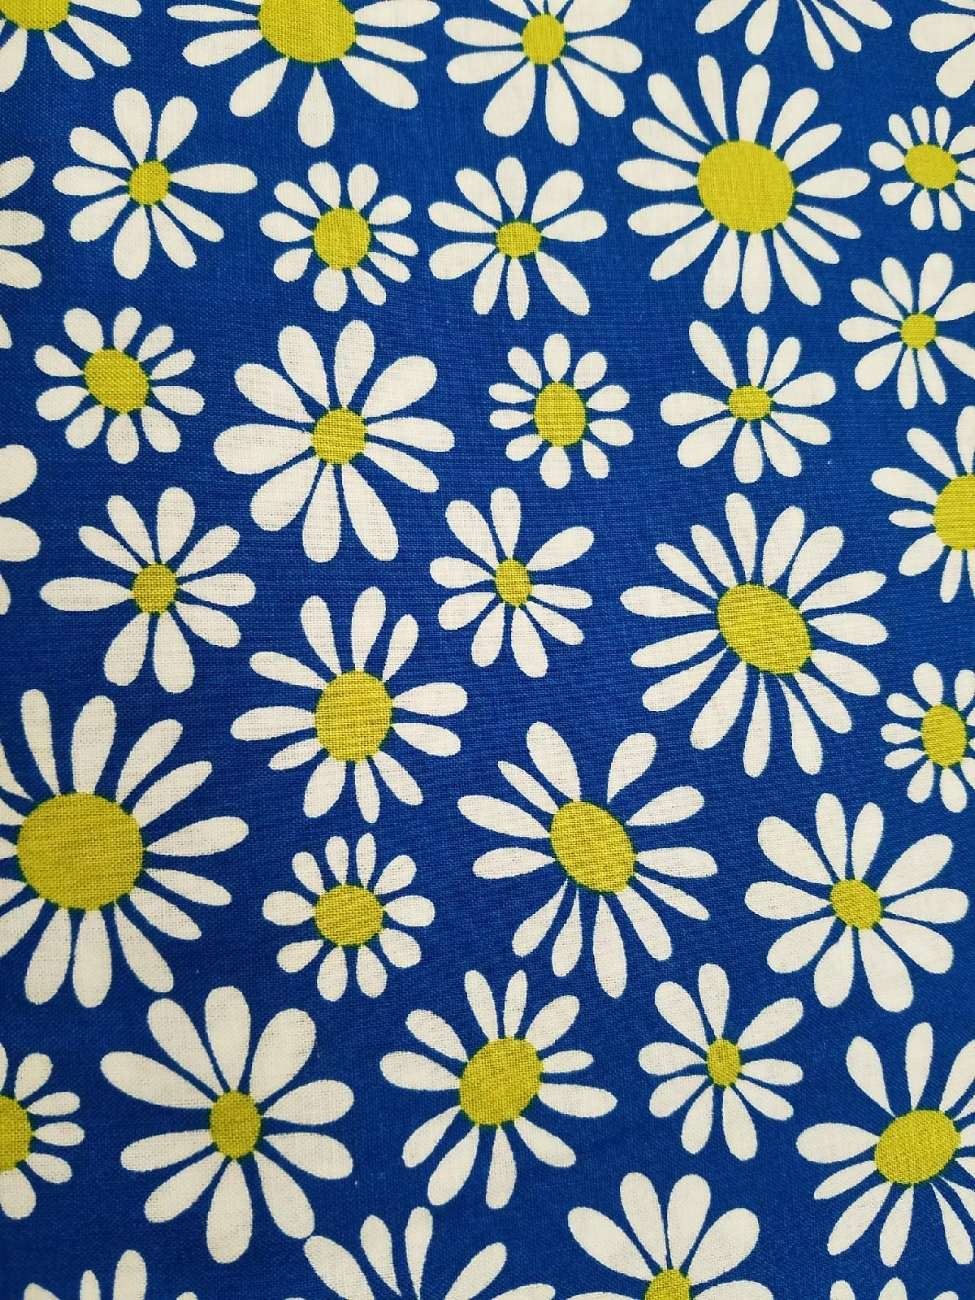 Benartex Crazy Daisy On Blue